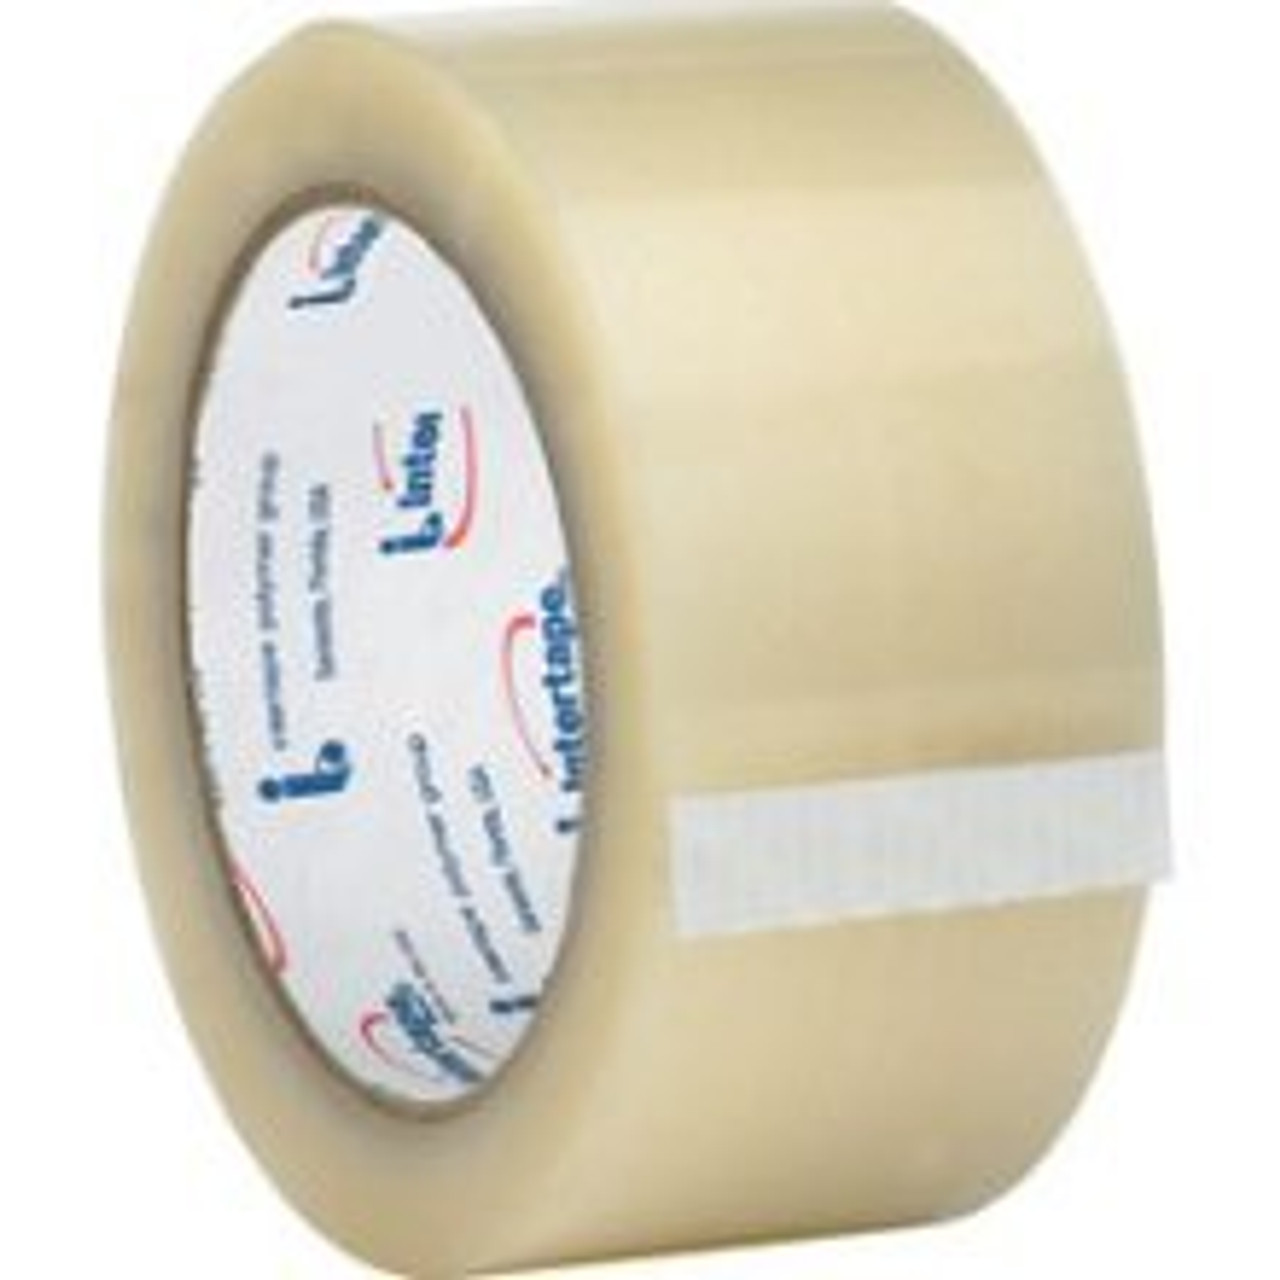 "Intertape 6100 Clear Carton Sealing Tape 2"" x 110 yds. (36 Rolls)"